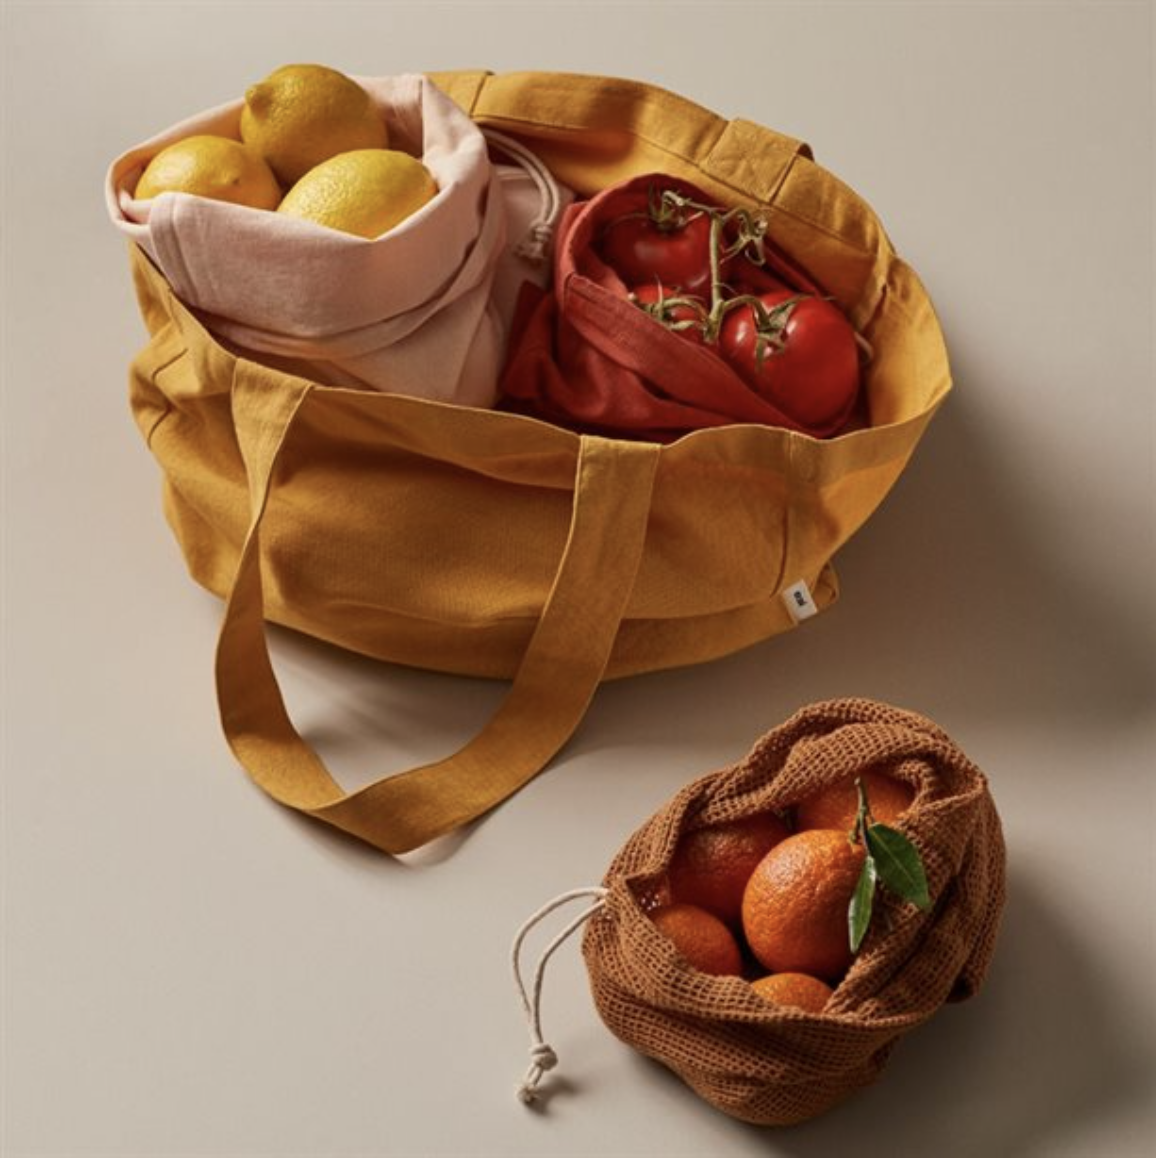 reusable bags filled with fruits and vegetables